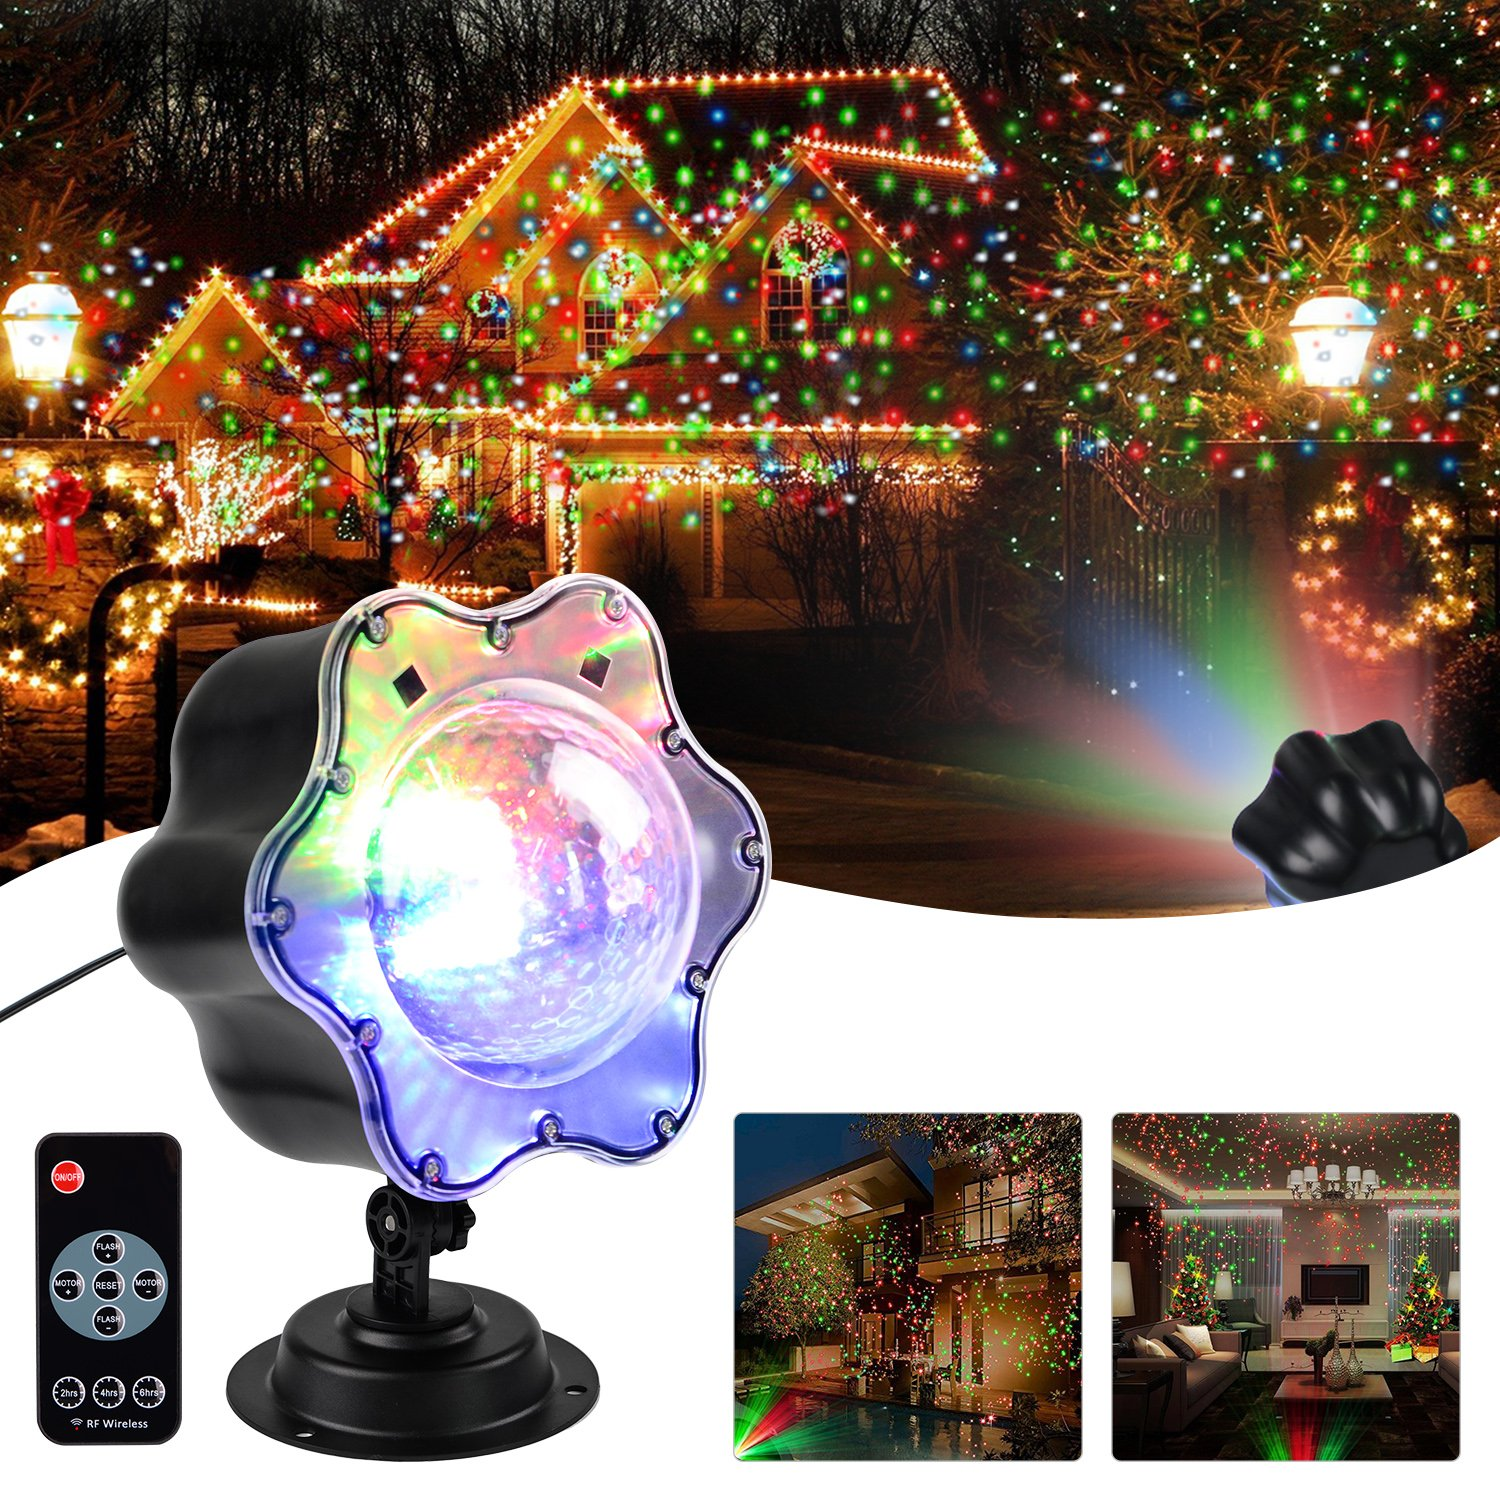 Shower star decorative lighting projectors indoor outdoor landscape lights snowfall rotating waterproof projector lamps moving colored led lights for